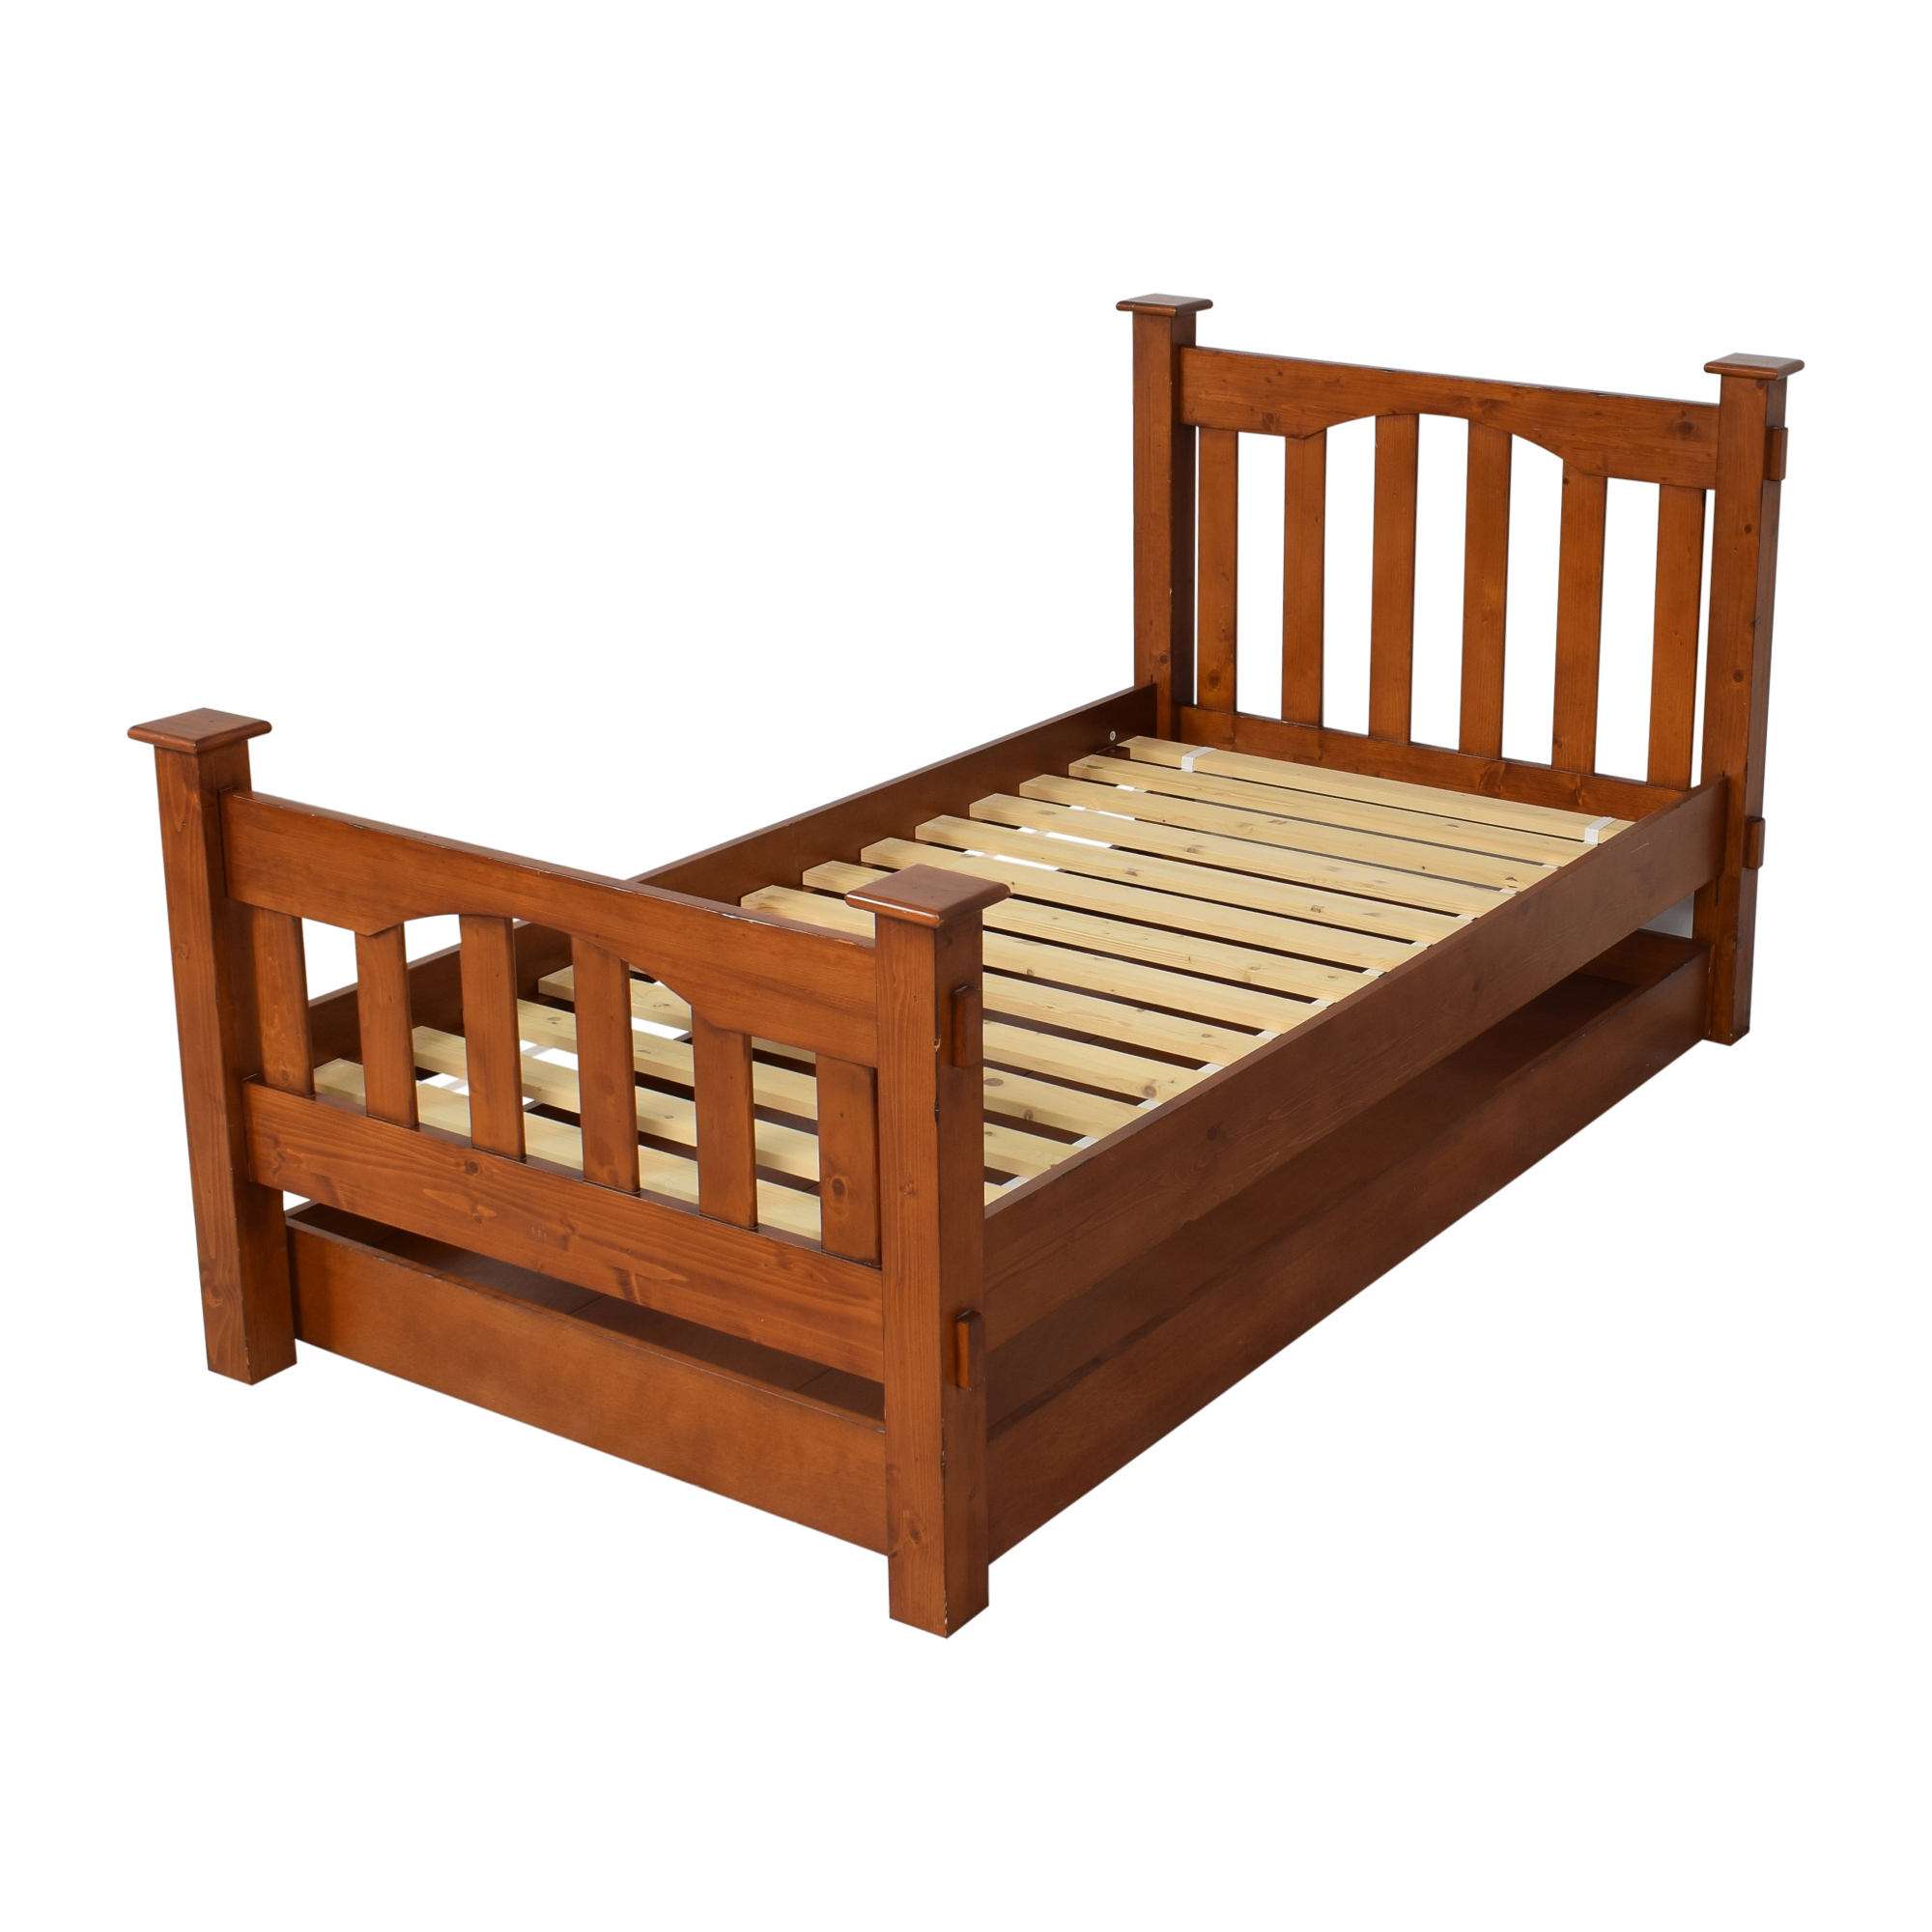 buy Pottery Barn Kids Pottery Barn Kids Kendall Twin Bed and Trundle online